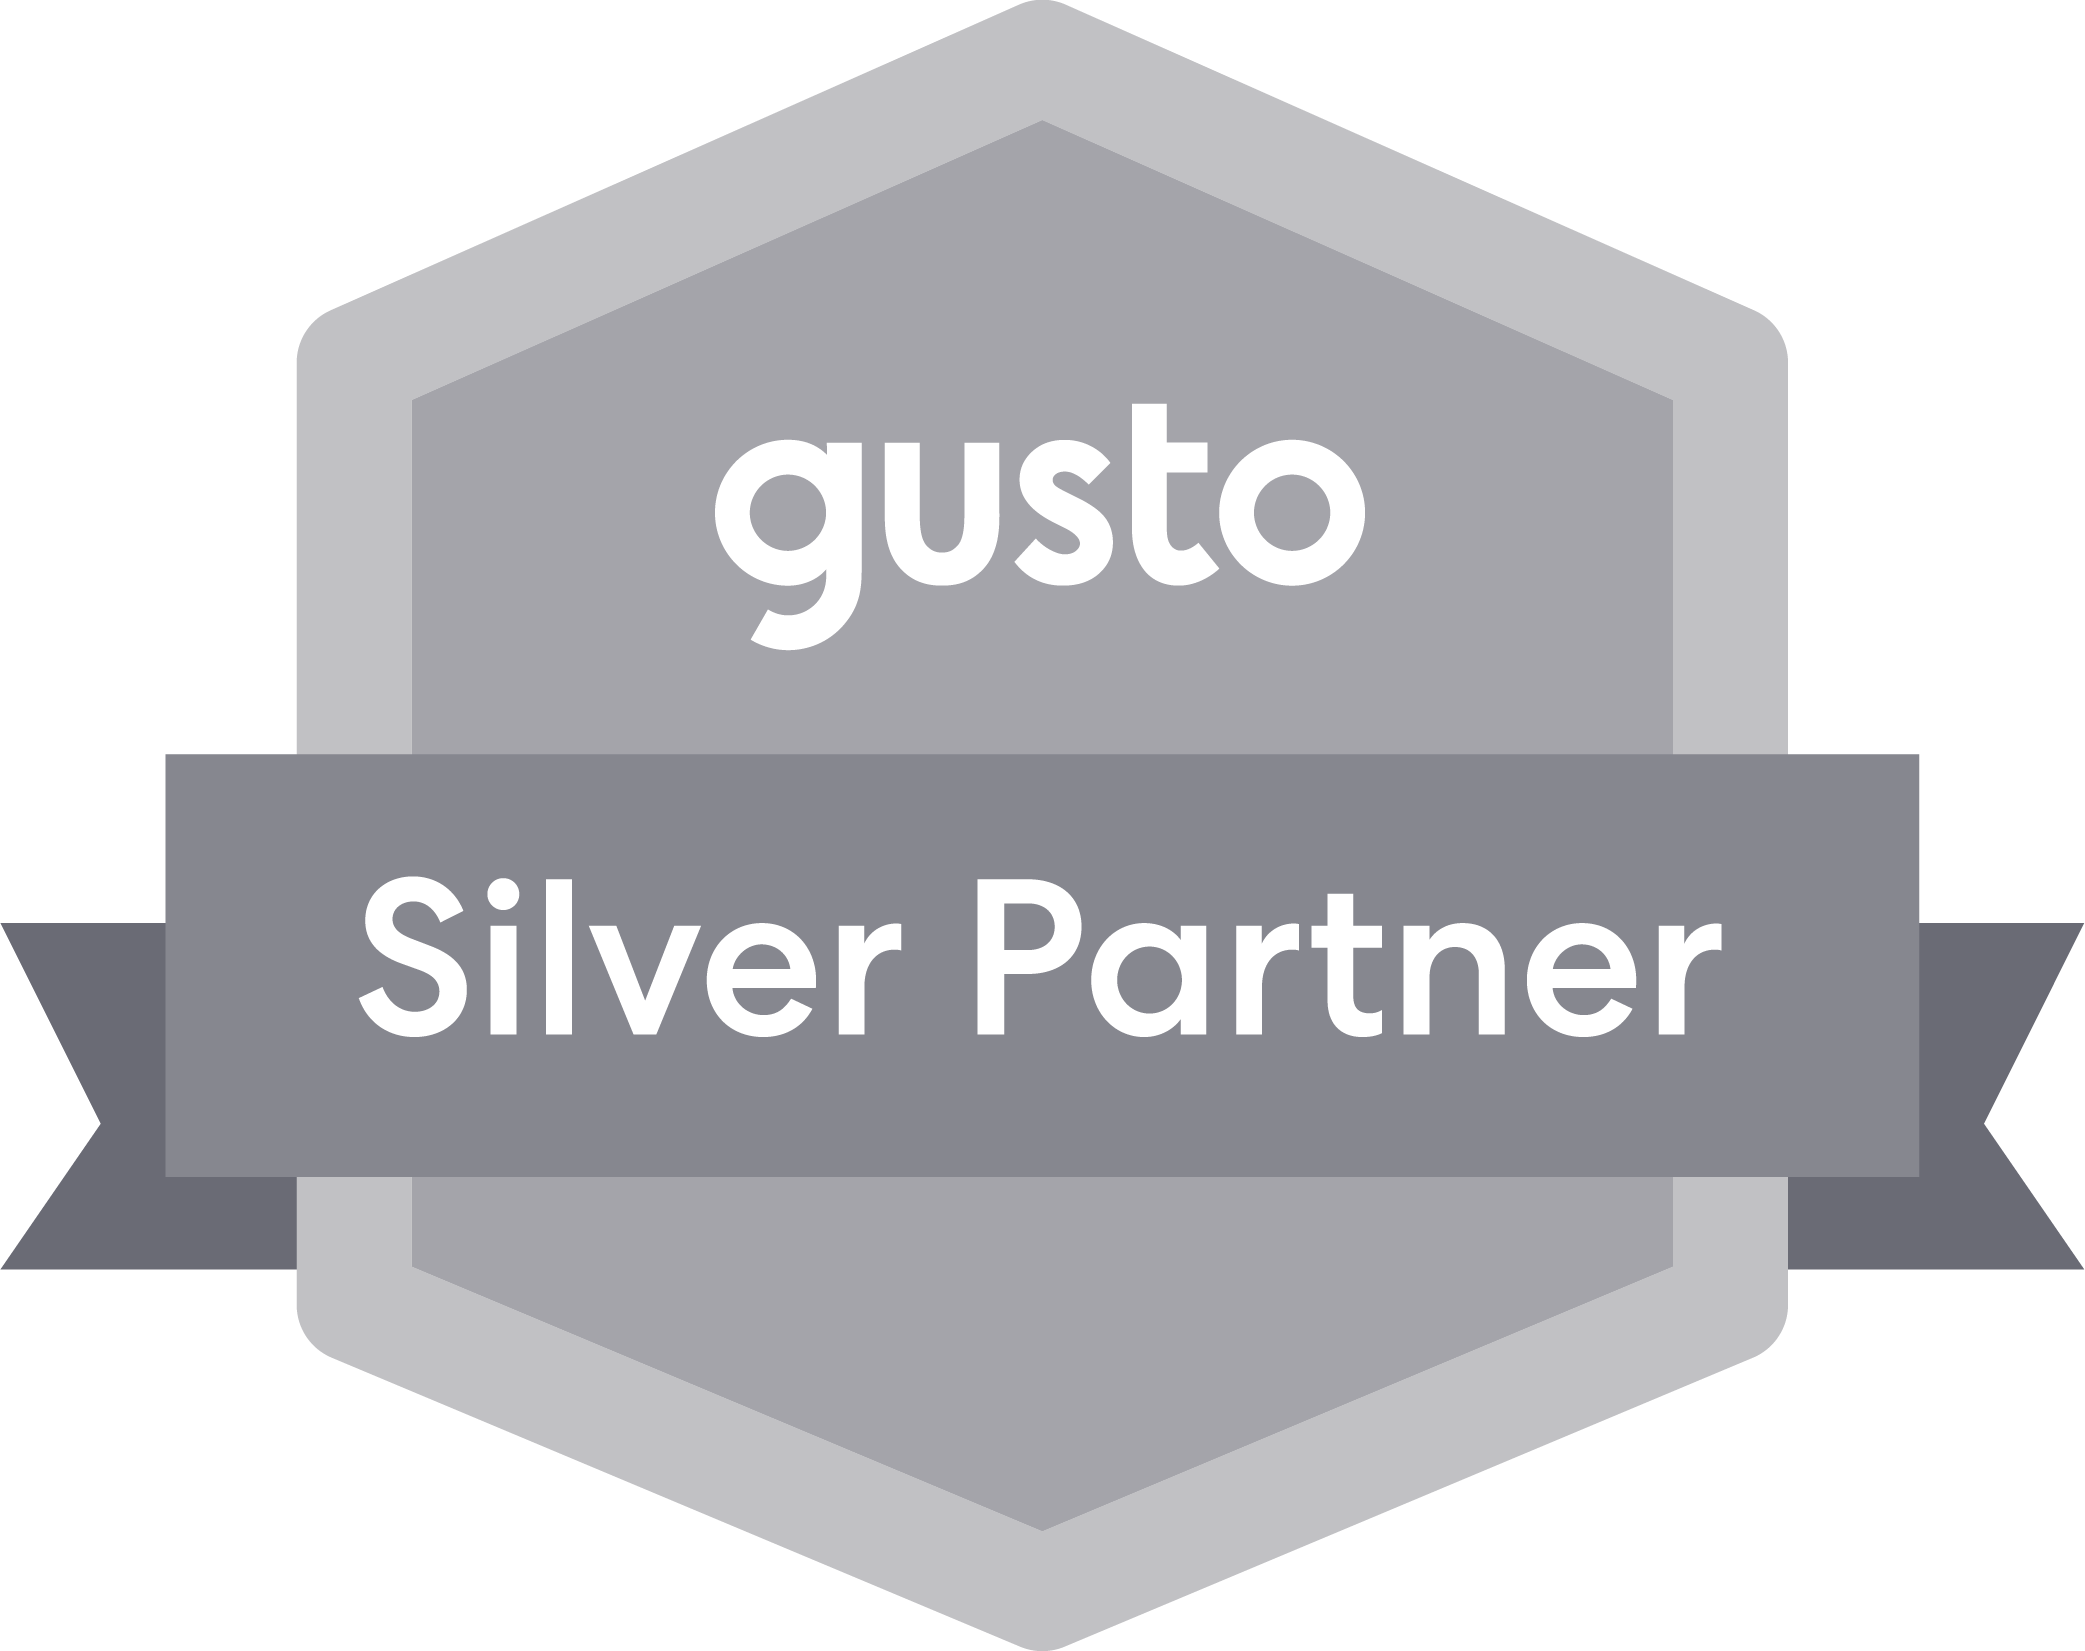 GP CPA  » Certified Public Accountant using Xero, Avalara and Gusto to make your payroll and taxes easier, serving in North Carolina and South Carolina